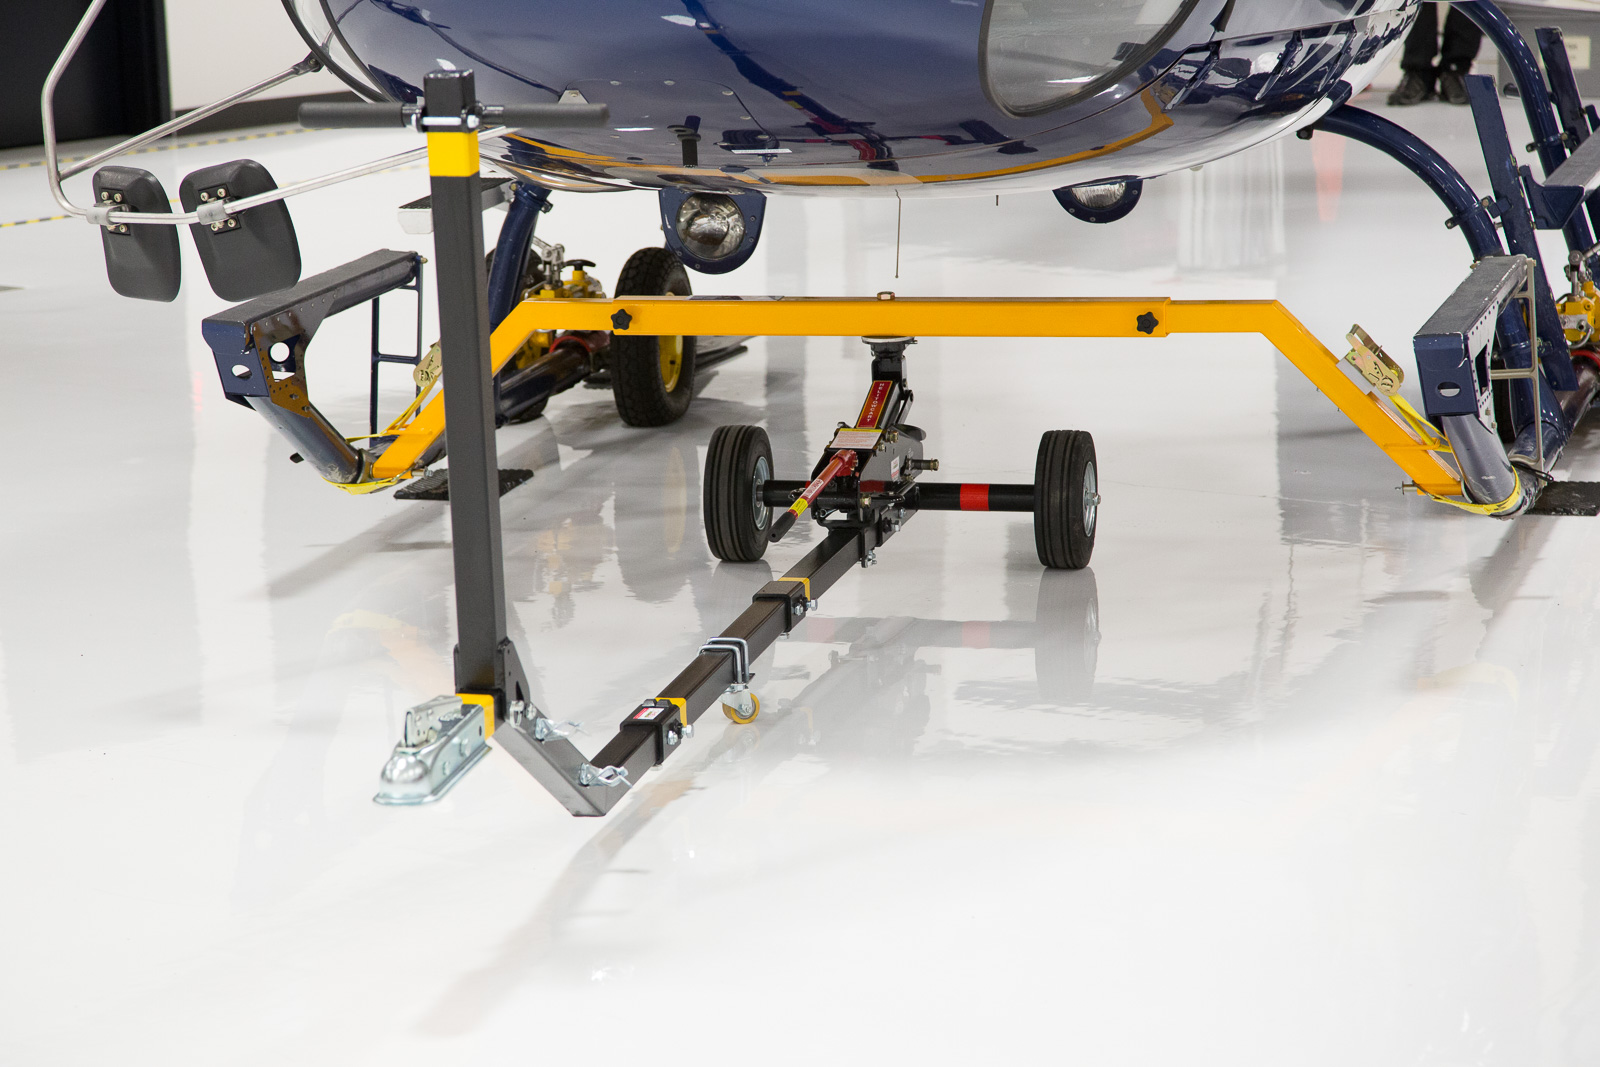 Universal Towbar with AS350